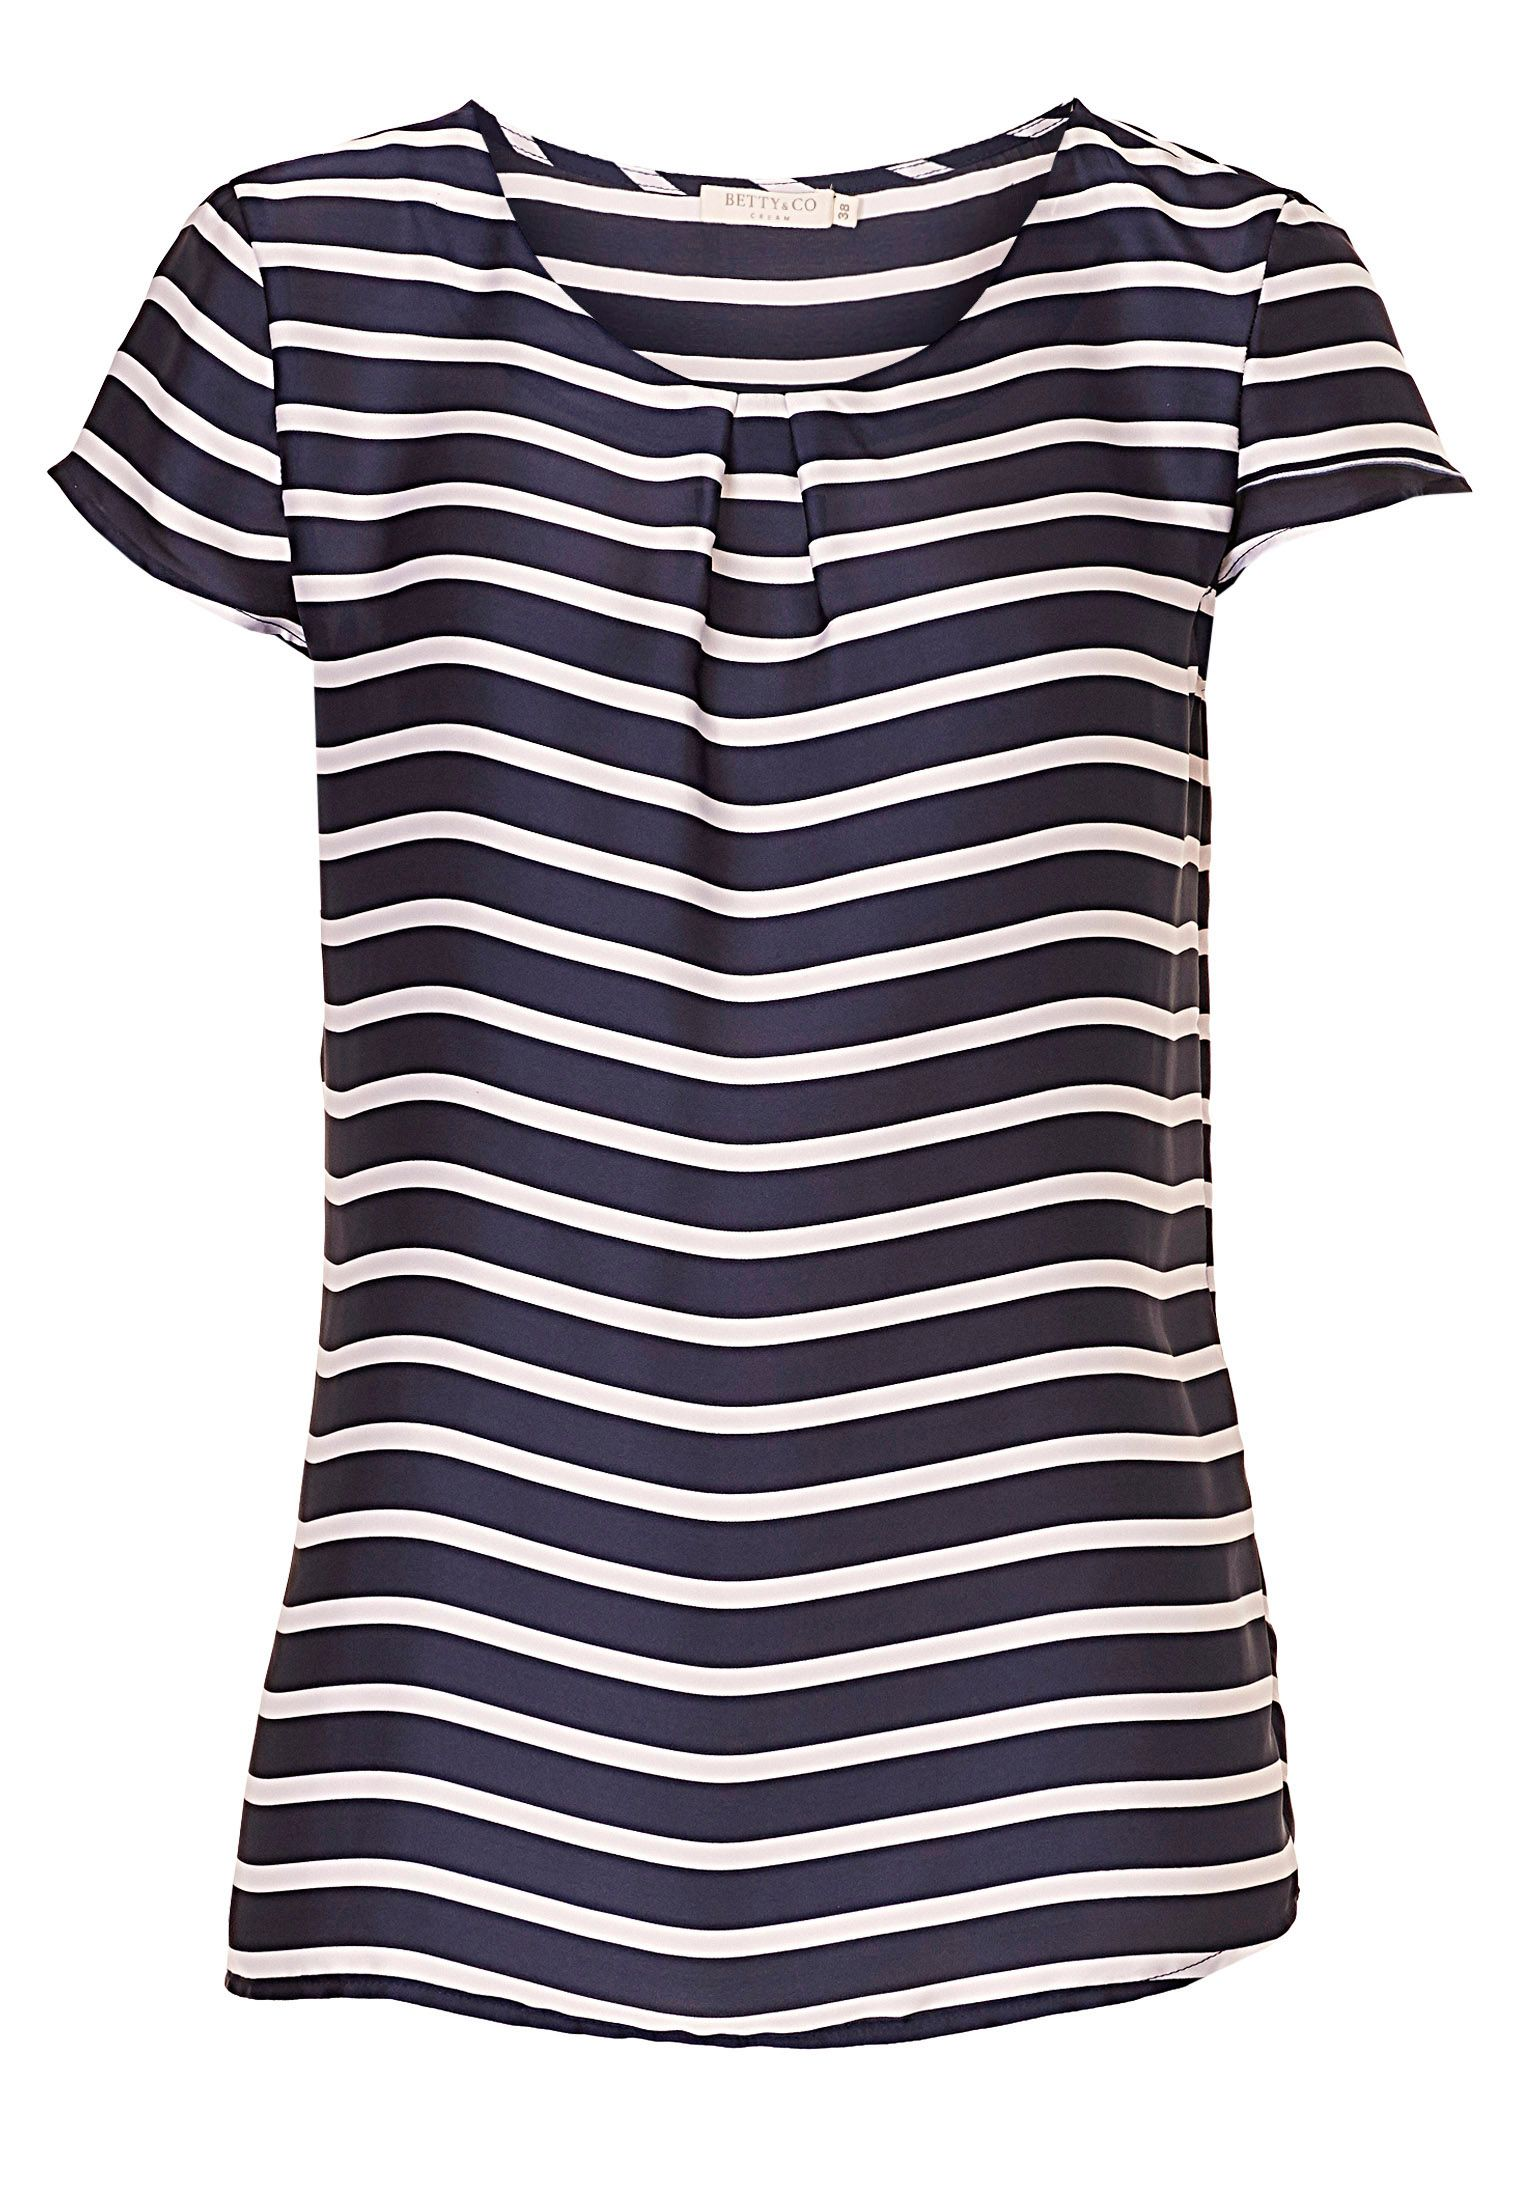 Betty & Co. Striped blouse, White